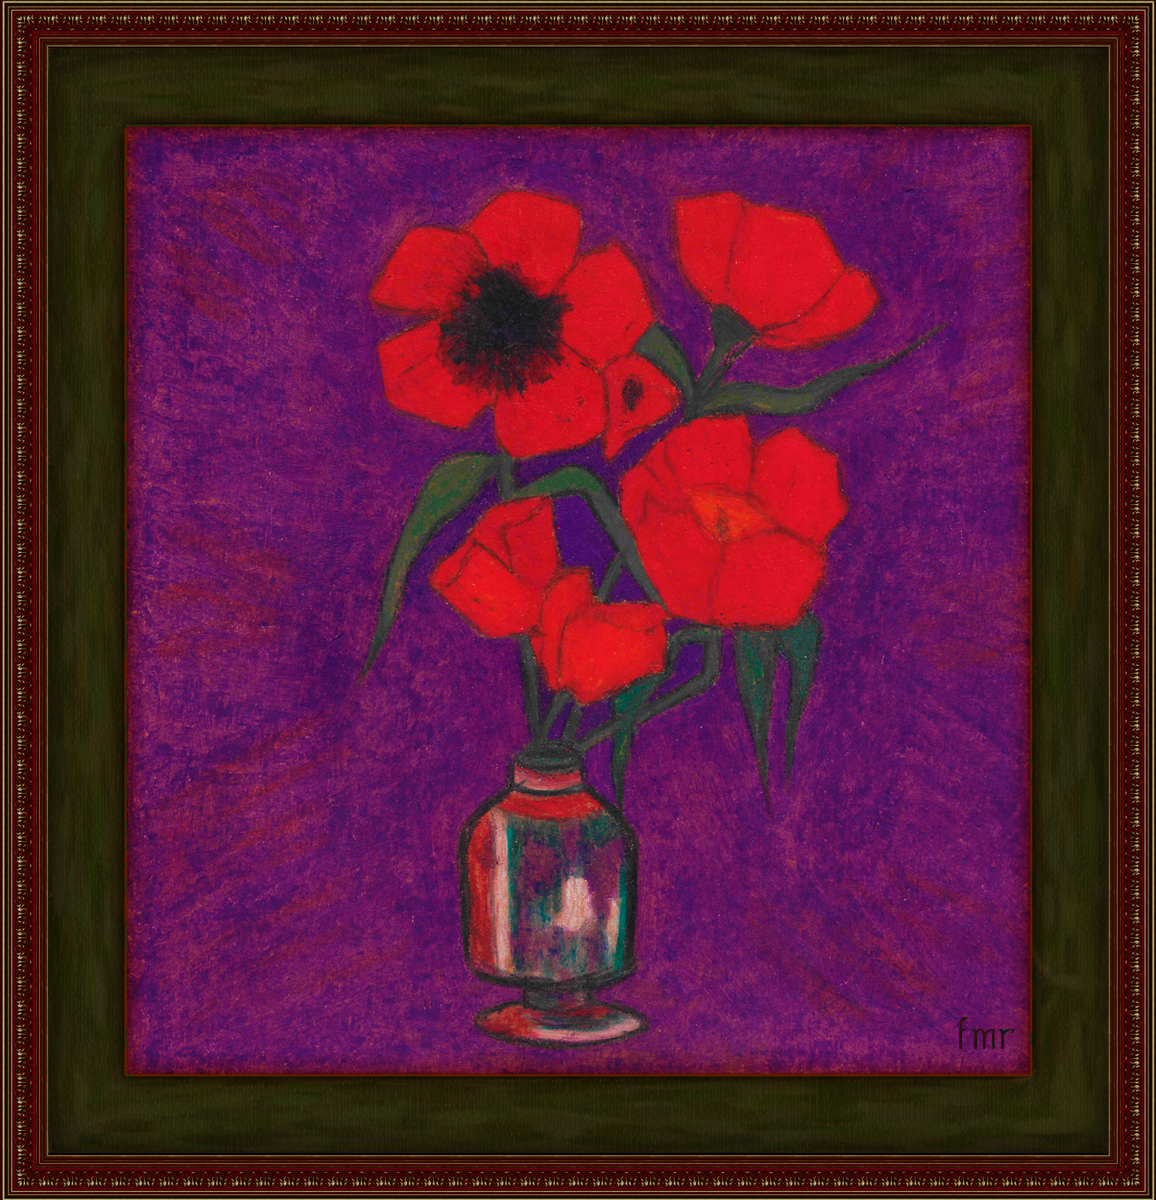 Vase of Poppies by Saltwater